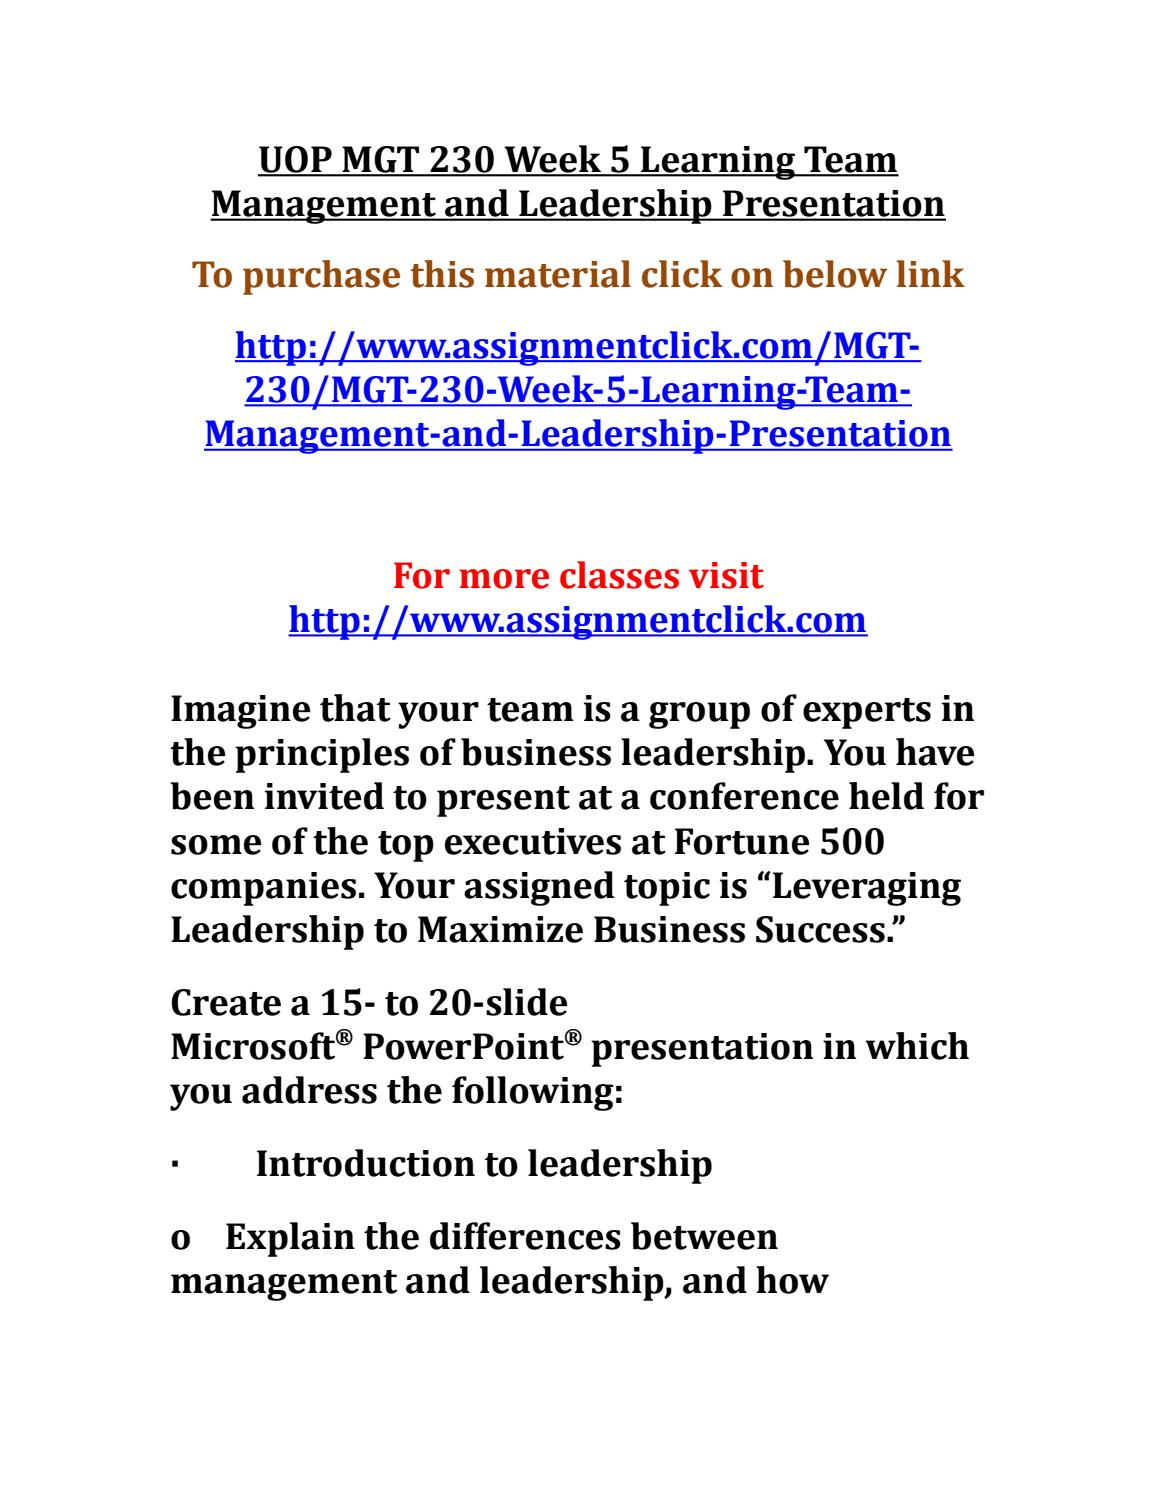 management and leadership presentation mgt 230 week 5 Description mgt 230 week 5 leadership theory analysis discussion summary mgt 230 week 5 leadership theory analysis discussion summary review vroom's model of leadership and fiedler's contingency model on pages 430-433 of the text.